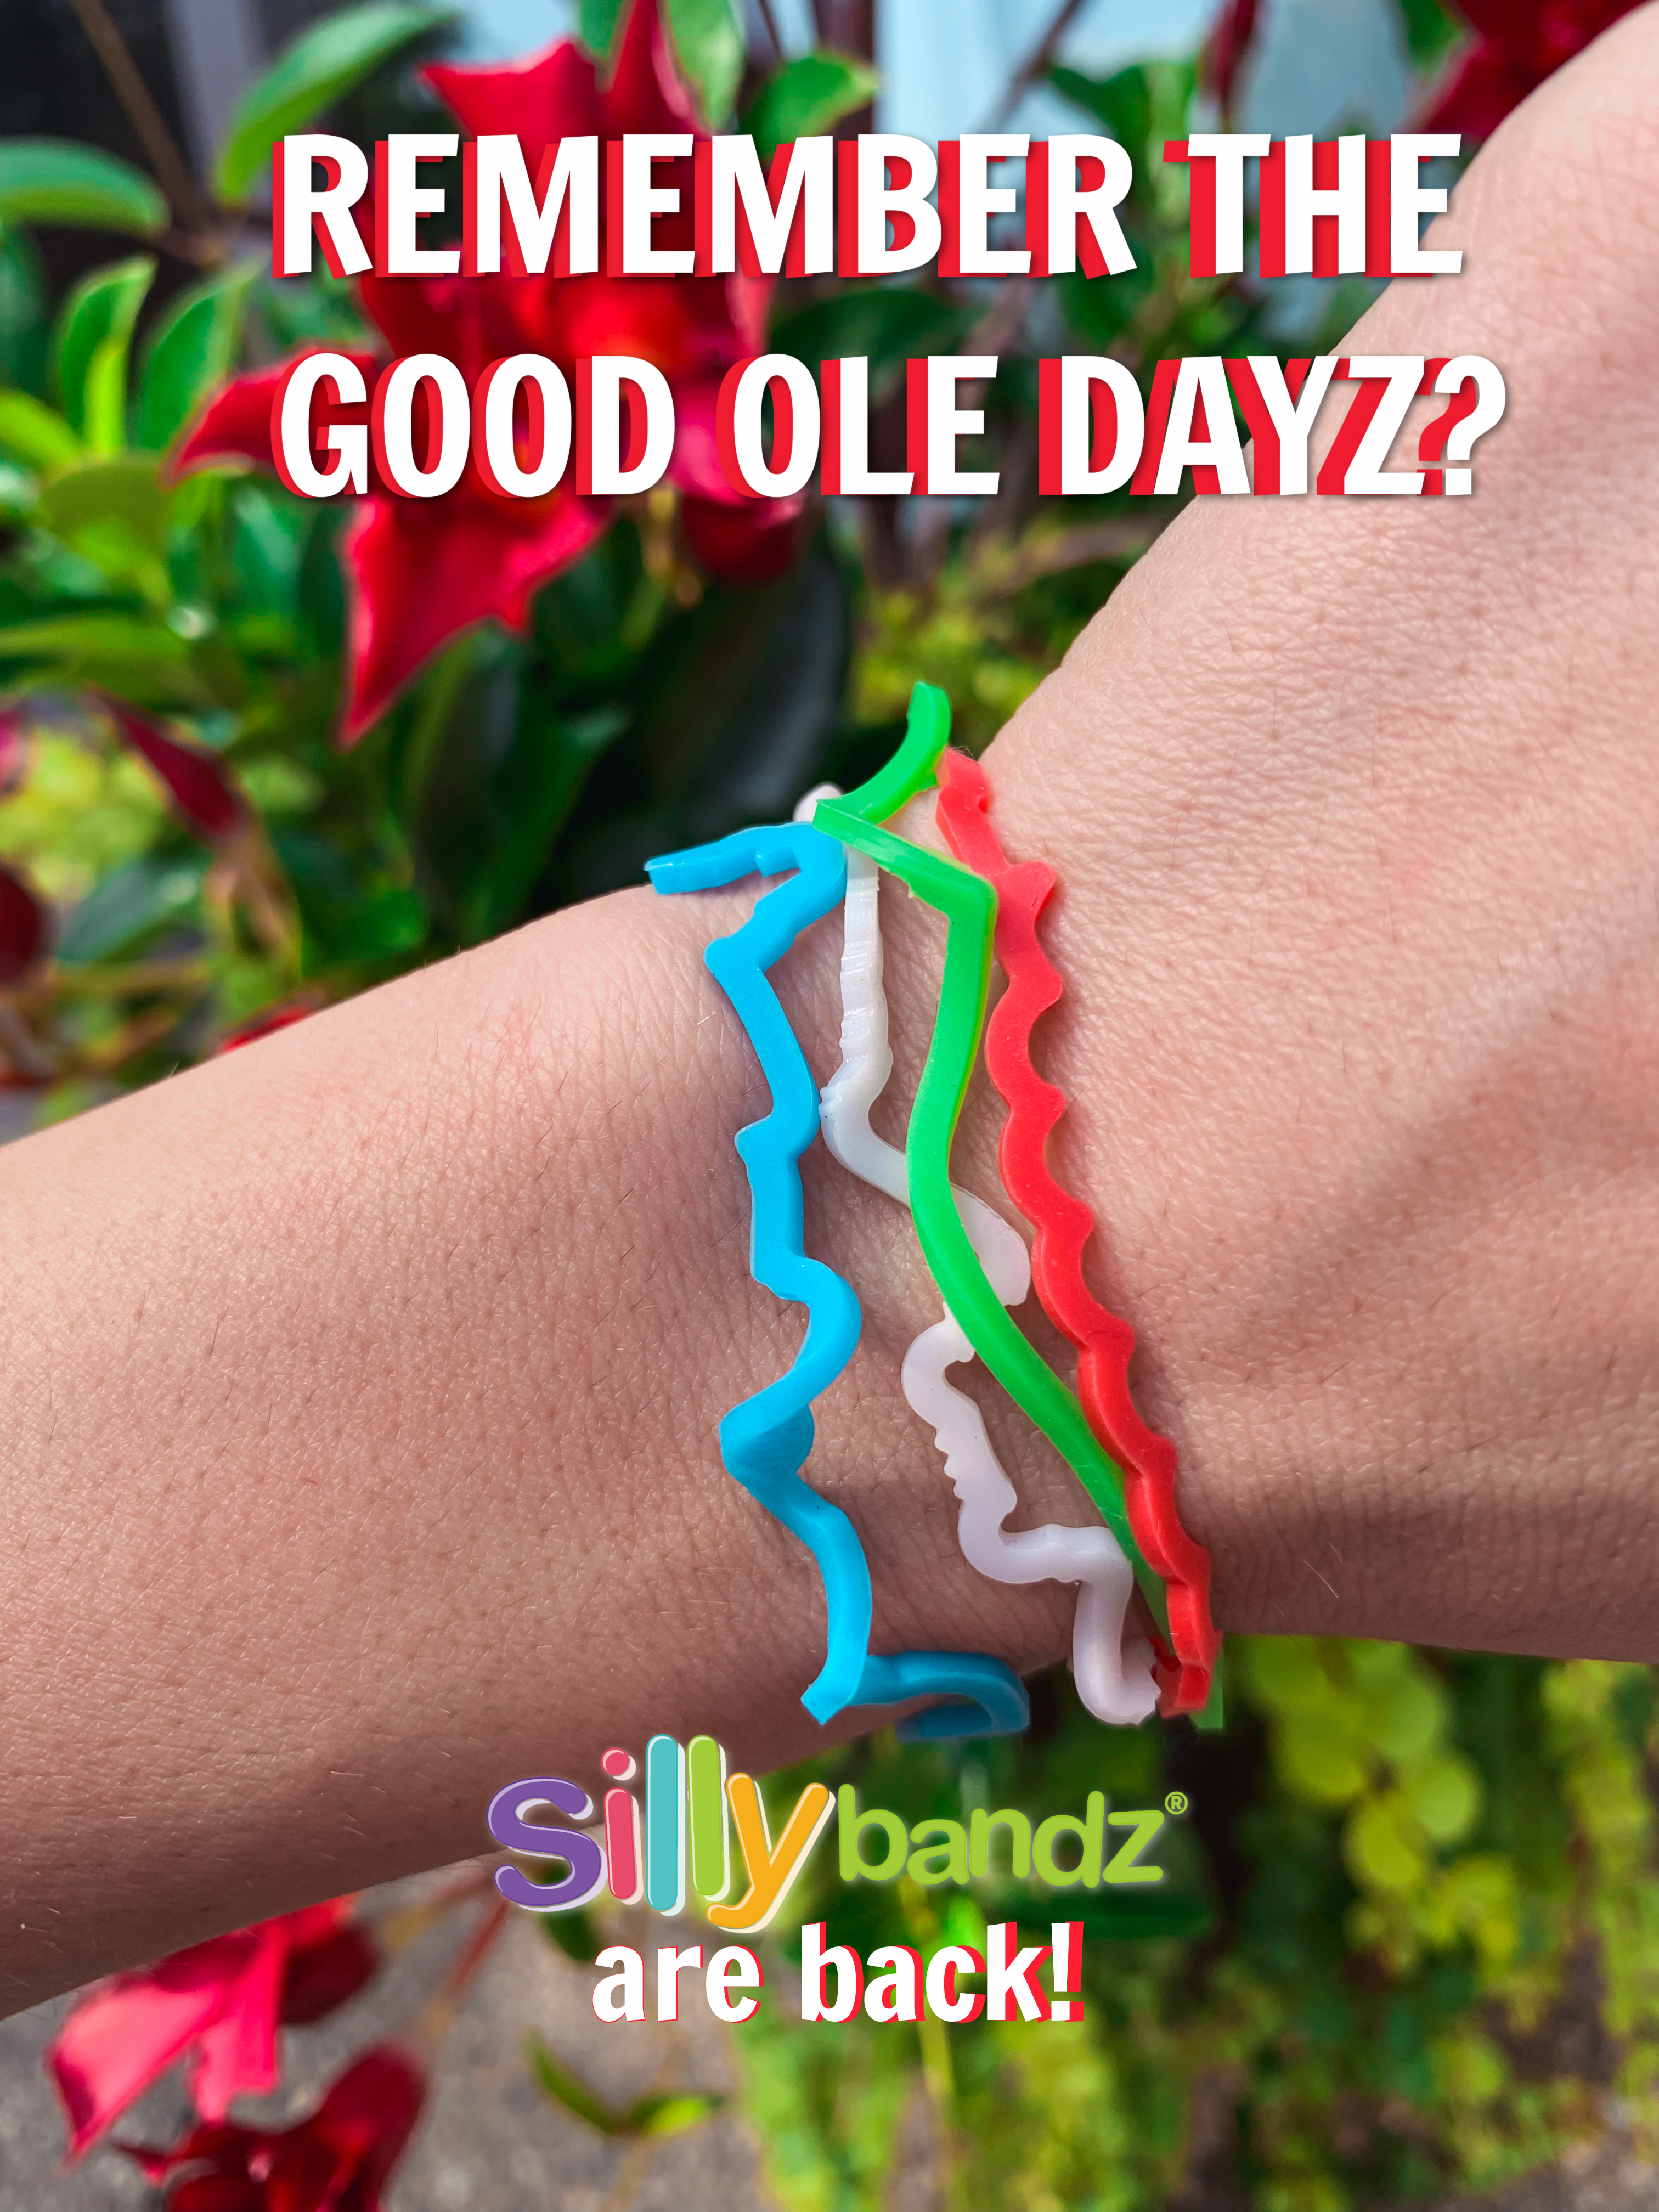 Sillybandz Are Back In 2020 Childhood Memories 2000 Silly Bands Childhood Memories